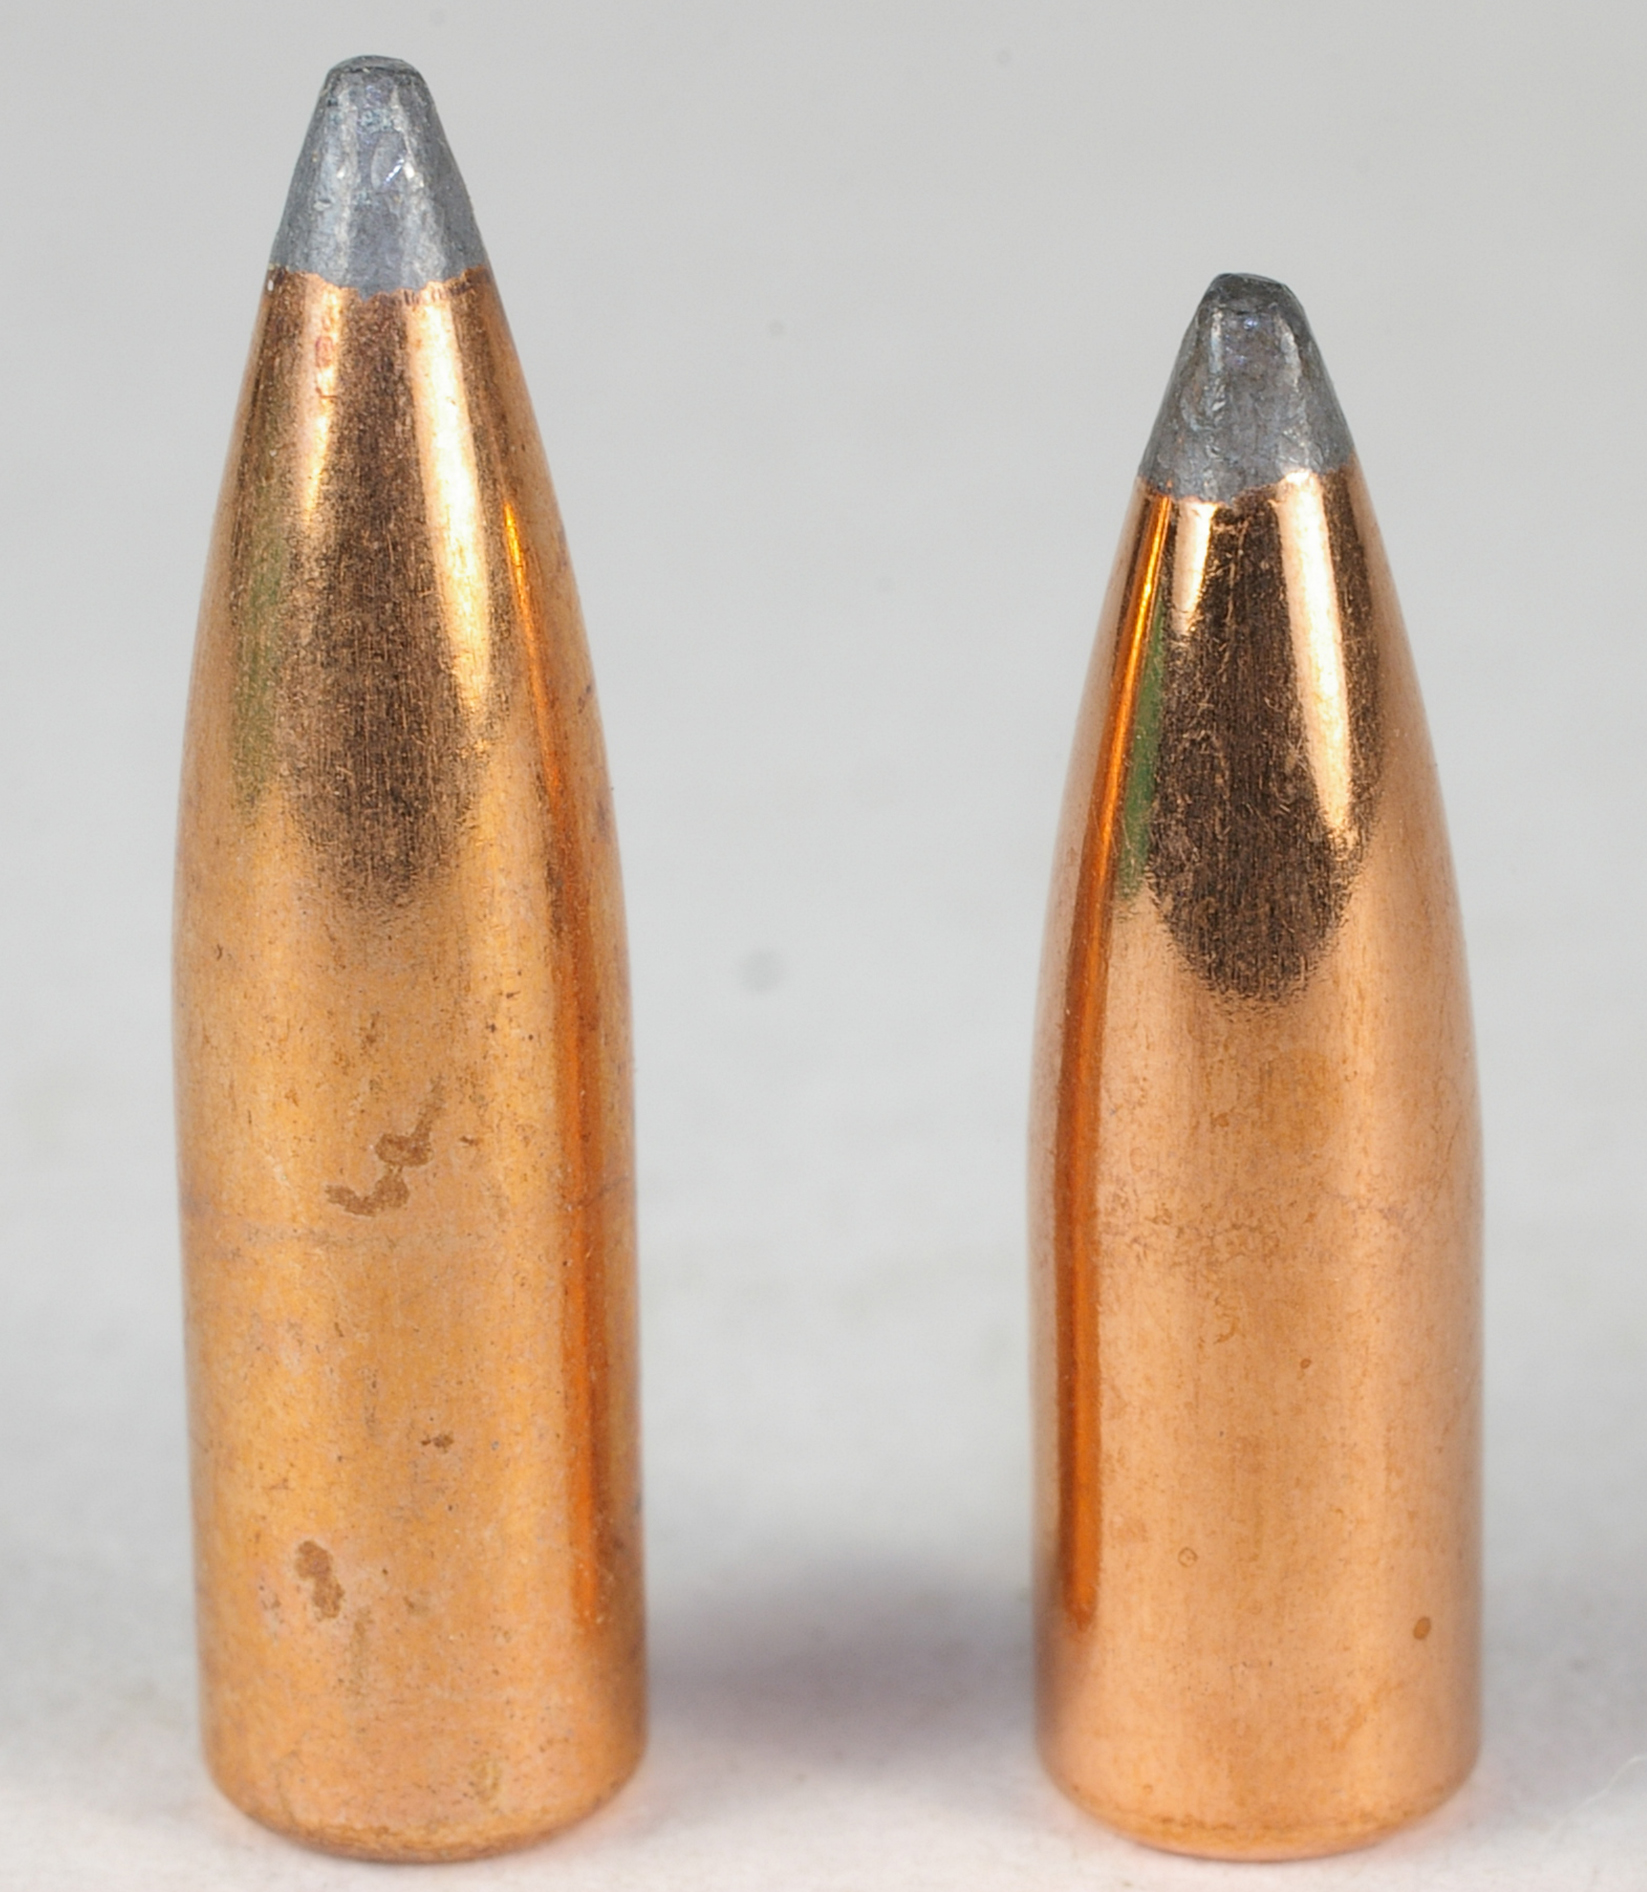 Loading 120-Grain Bullets in the 7mm-08 Remington | Load